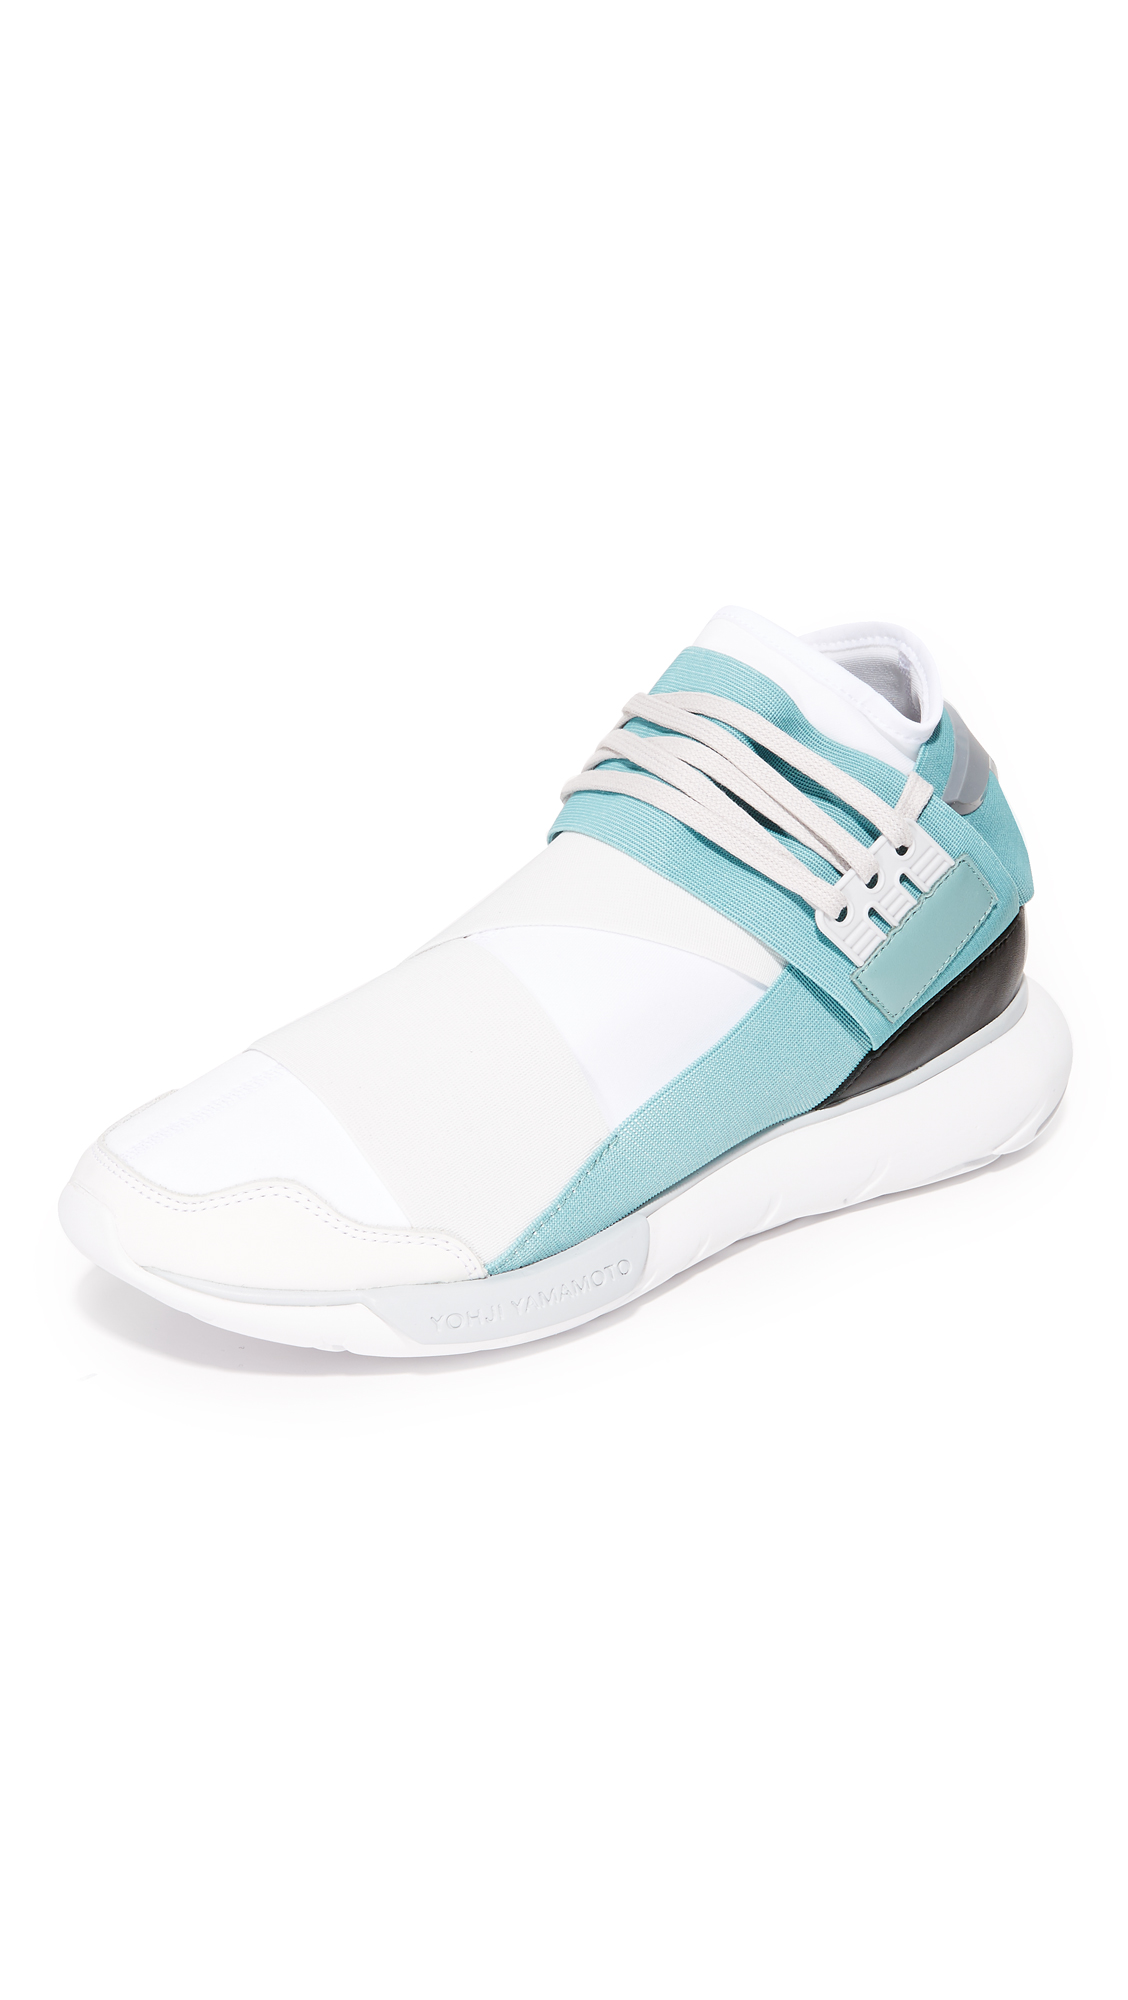 dd5f0a66cfe49 Y-3 Qasa High Neoprene   Leather Sneakers In White